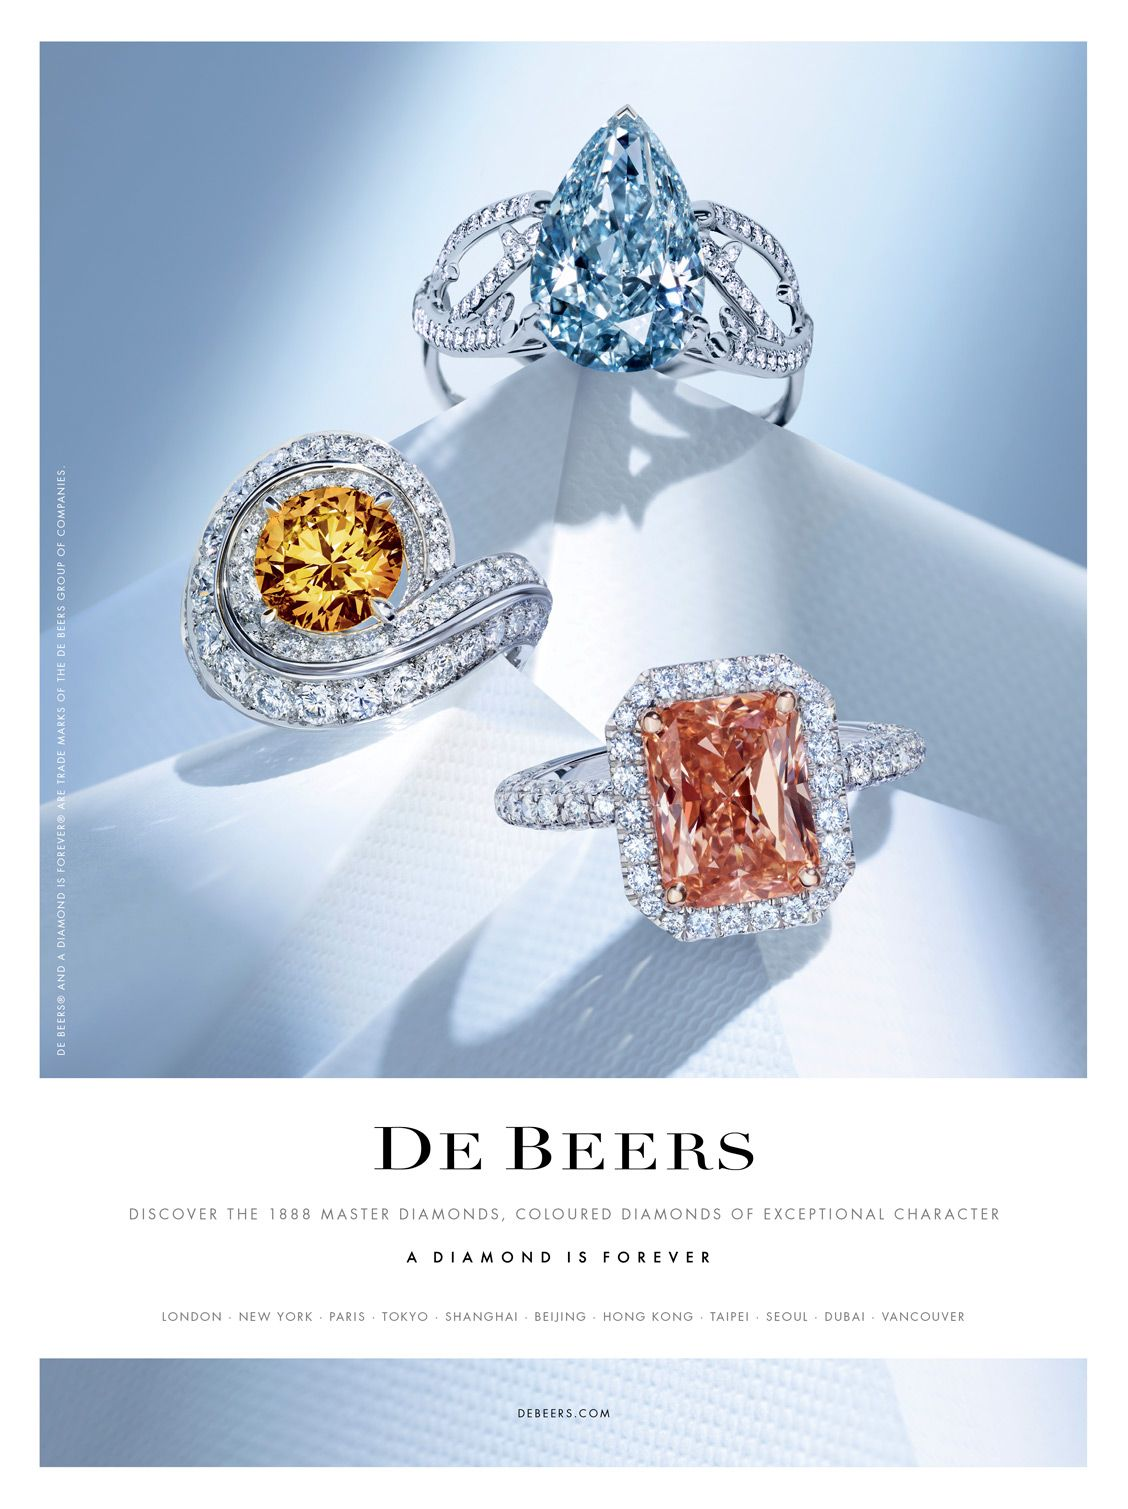 Paul barry design de beers paulbarrydesigncom pinterest de